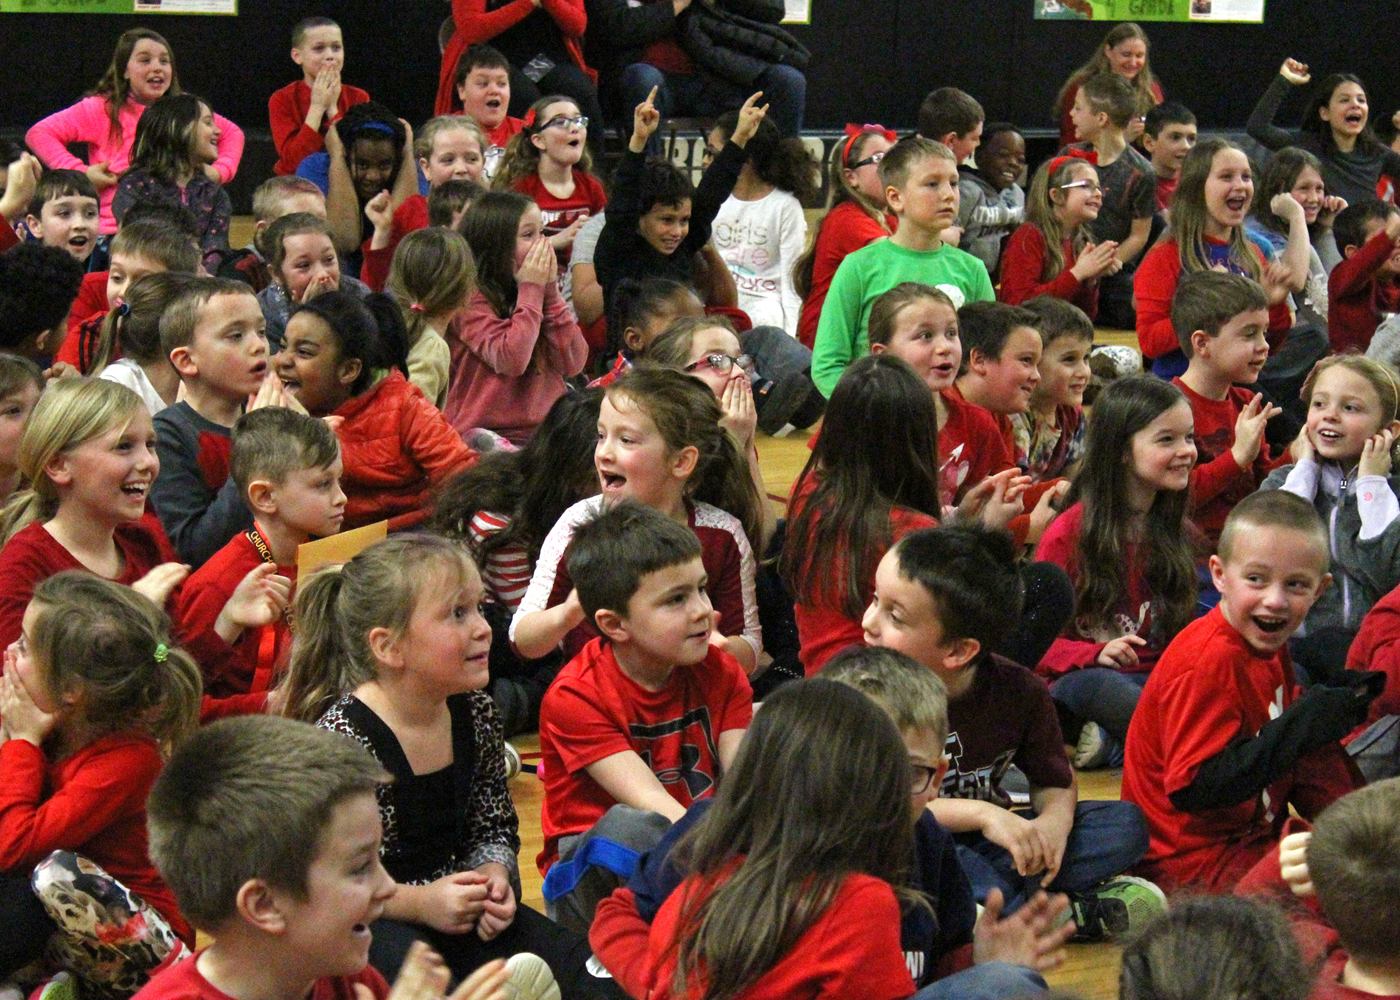 Students react with joy as they learn they've set a new record for this year's American Heart Association Hoops for Heart campaign. Provided photo